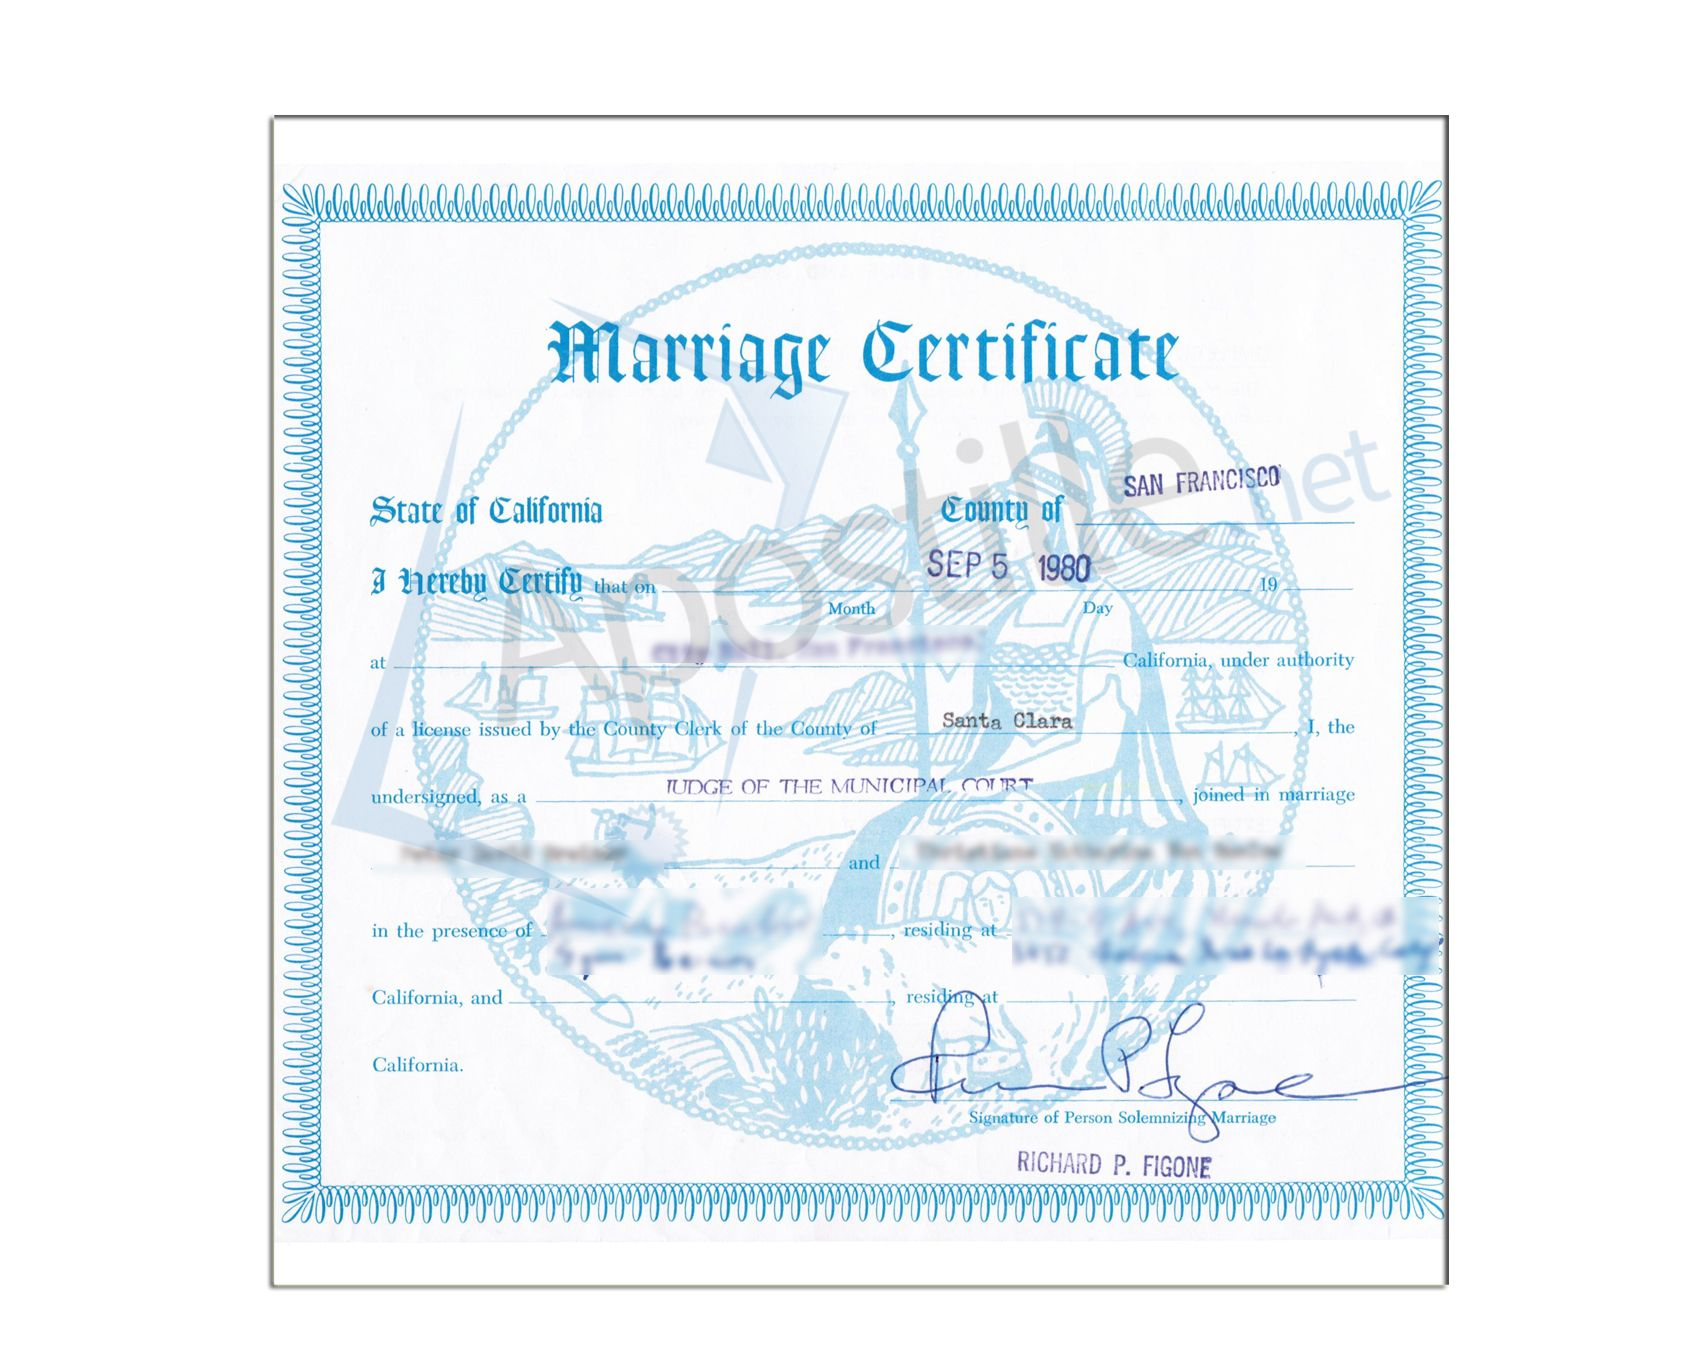 Apostille of a california certificate of birth state of san francisco marriage certificate xflitez Images